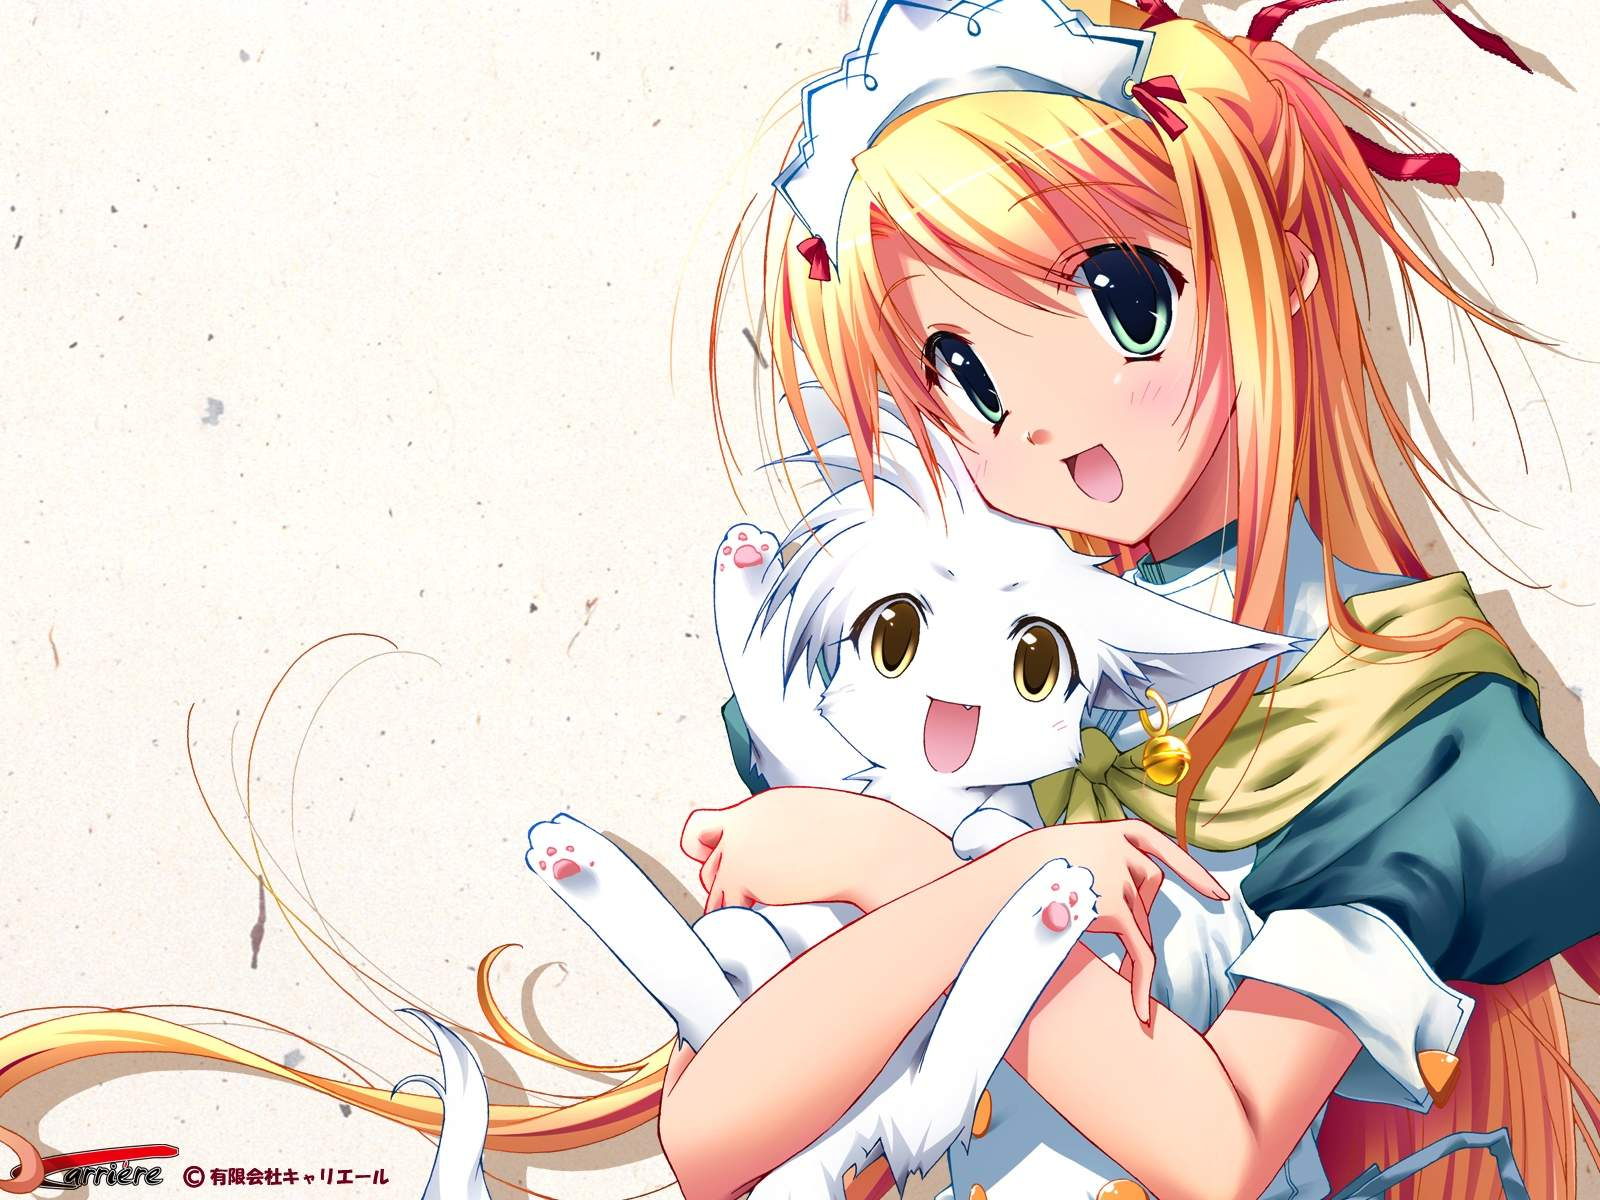 Anime Wallpaper Hd Daily Pictures Online Wallapers Pictures Pics